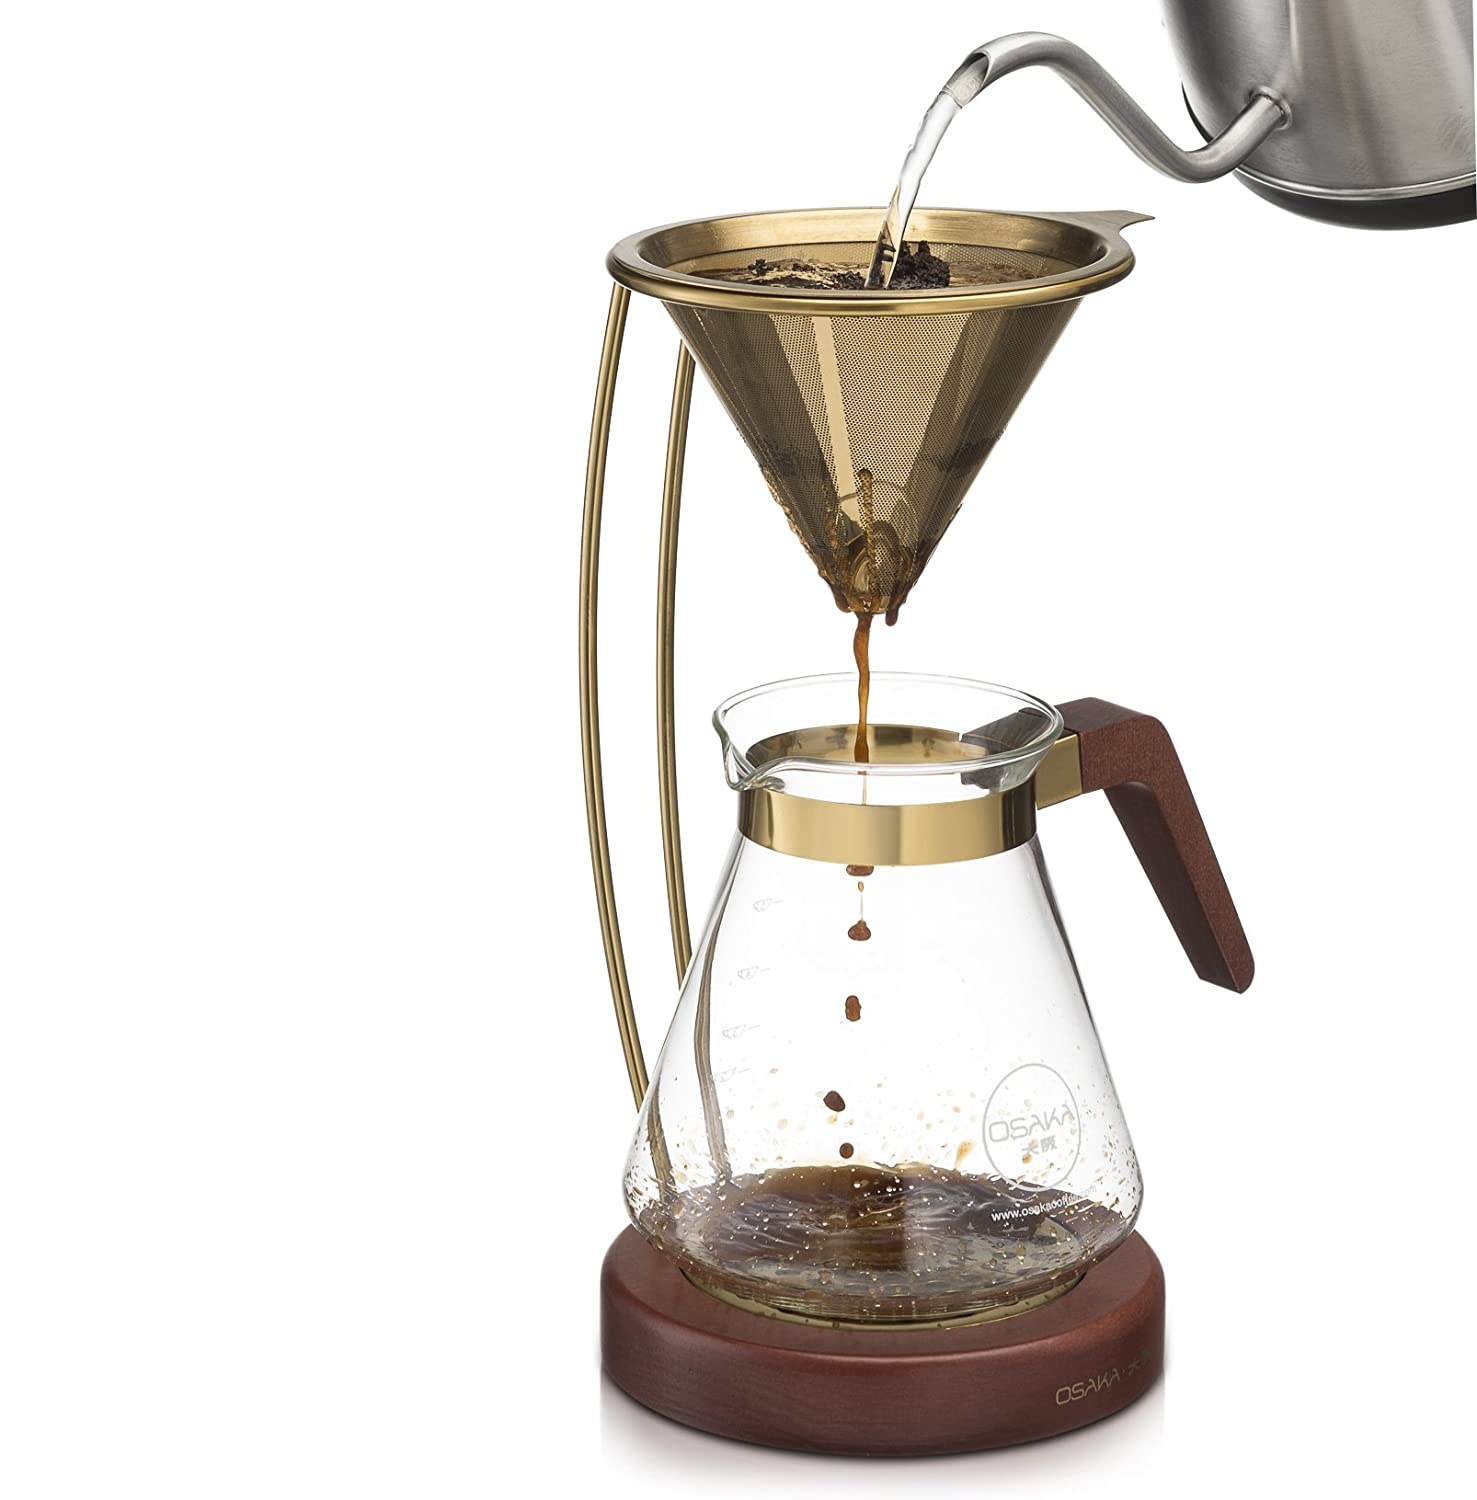 Amazoncom Osaka, Pour Over Coffee Brewer Large Capacity, Pourover Coffee